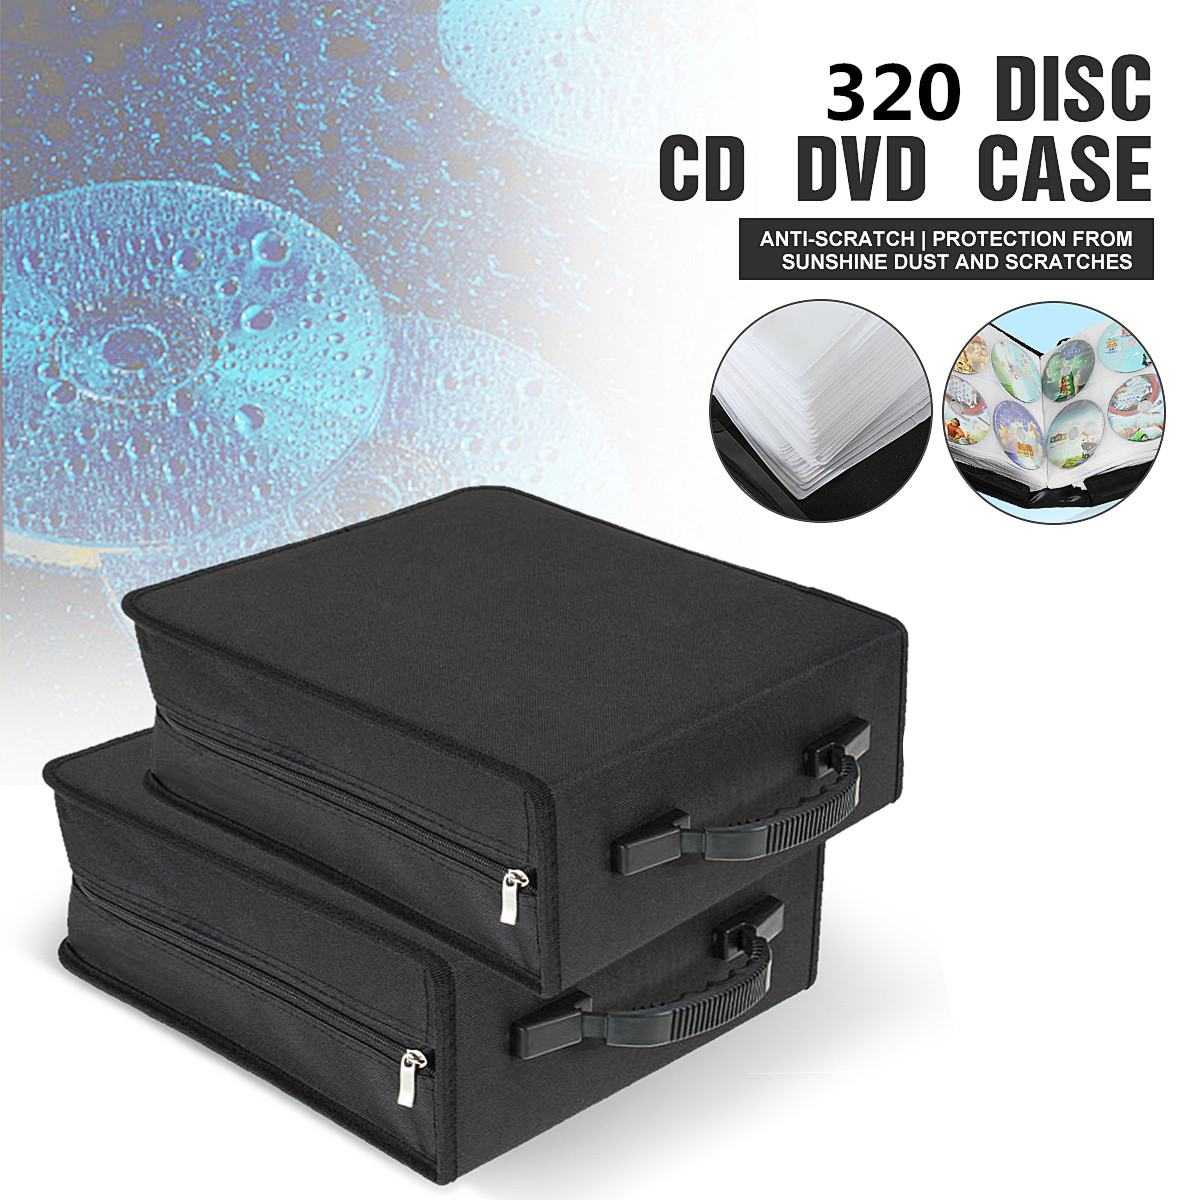 New Portable 320 Capacity CD DVD Media Storage Holder Carry Bag Case Durable Black High Quality